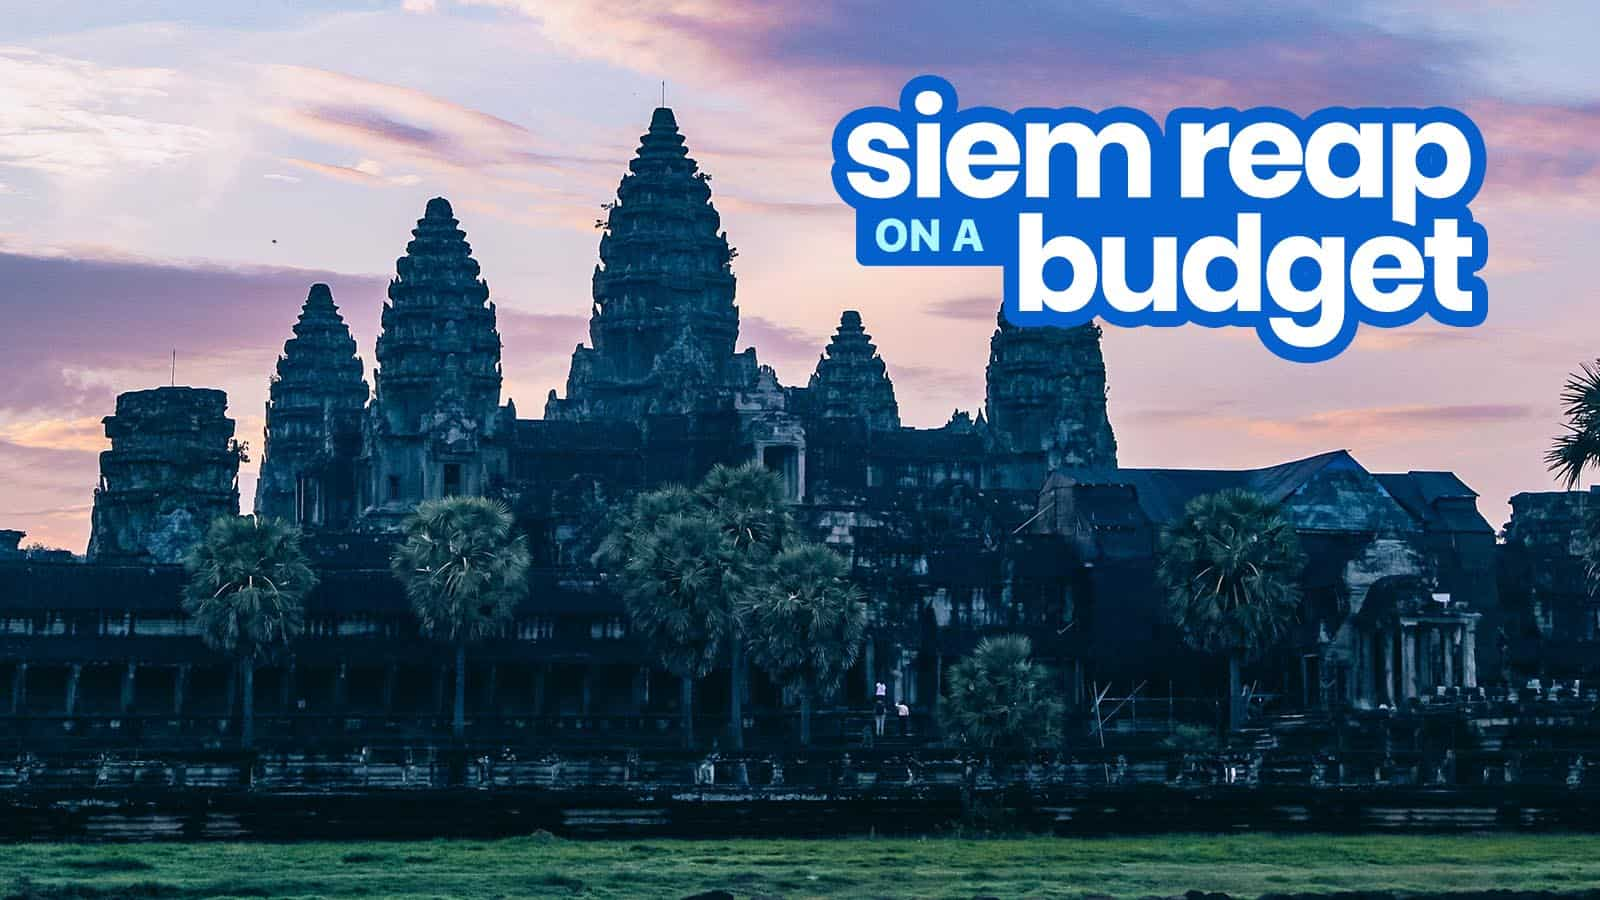 Updated! SIEM REAP TRAVEL GUIDE: Budget, Itinerary, Things to Do 2018